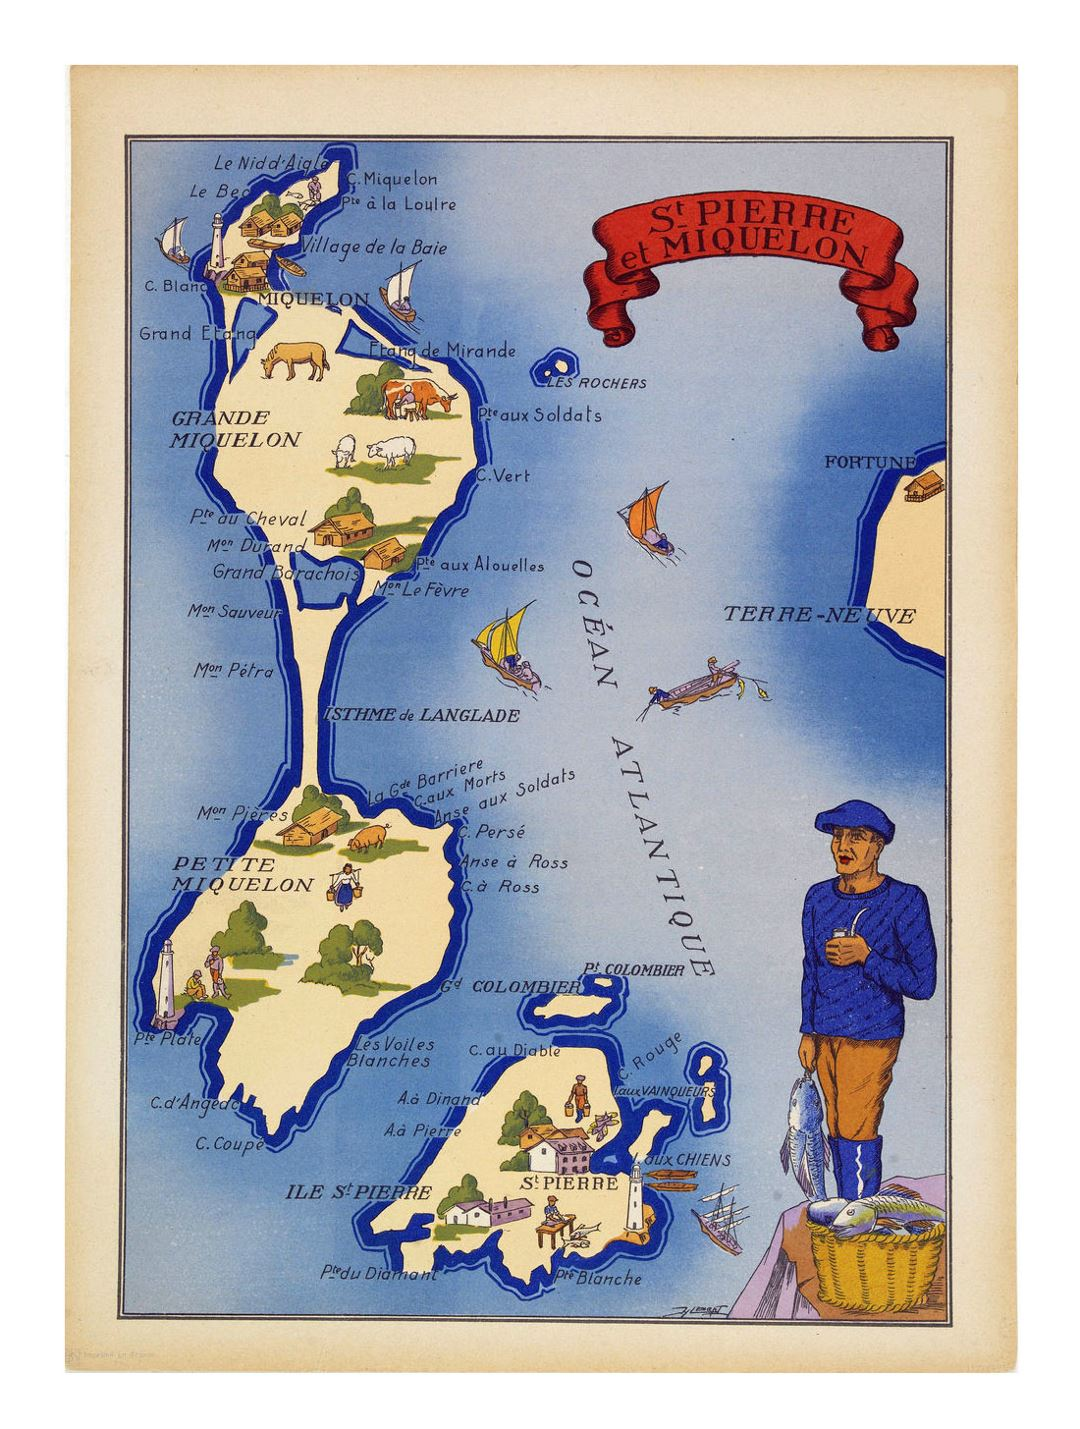 Detailed tourist illustrated map of Saint Pierre and Miquelon